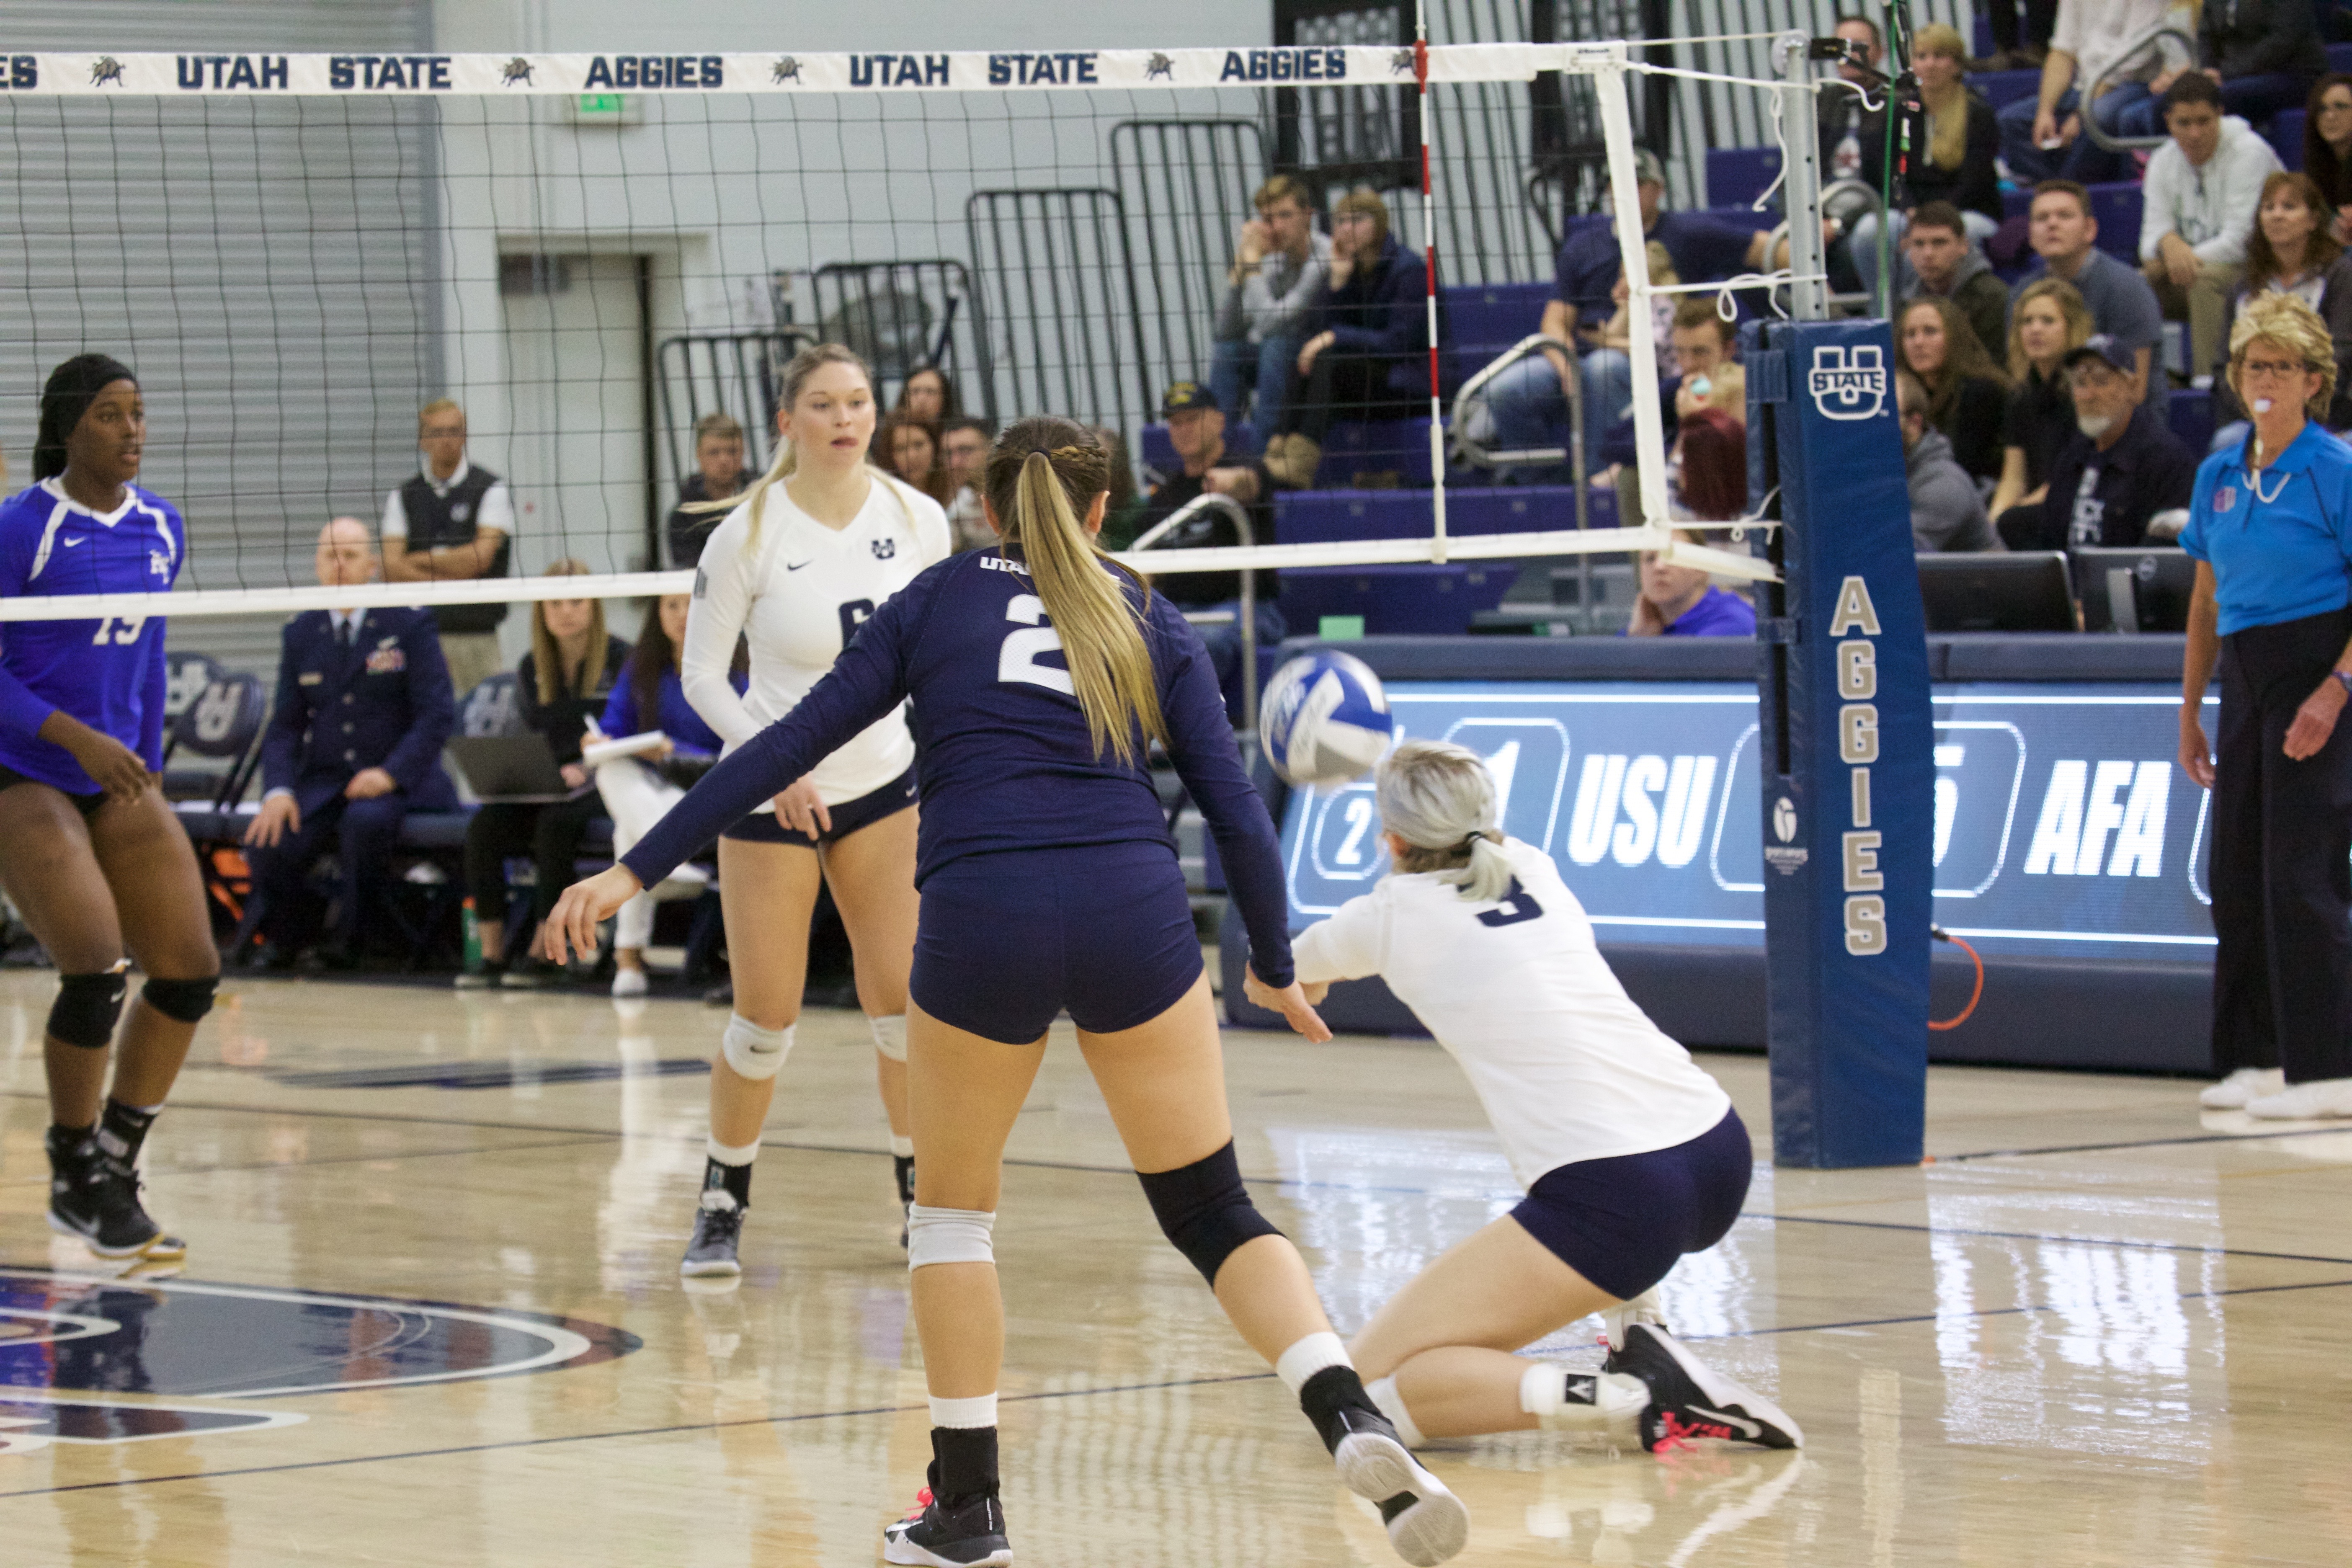 GALLERY: Volleyball vs Air Force - The Utah Statesman